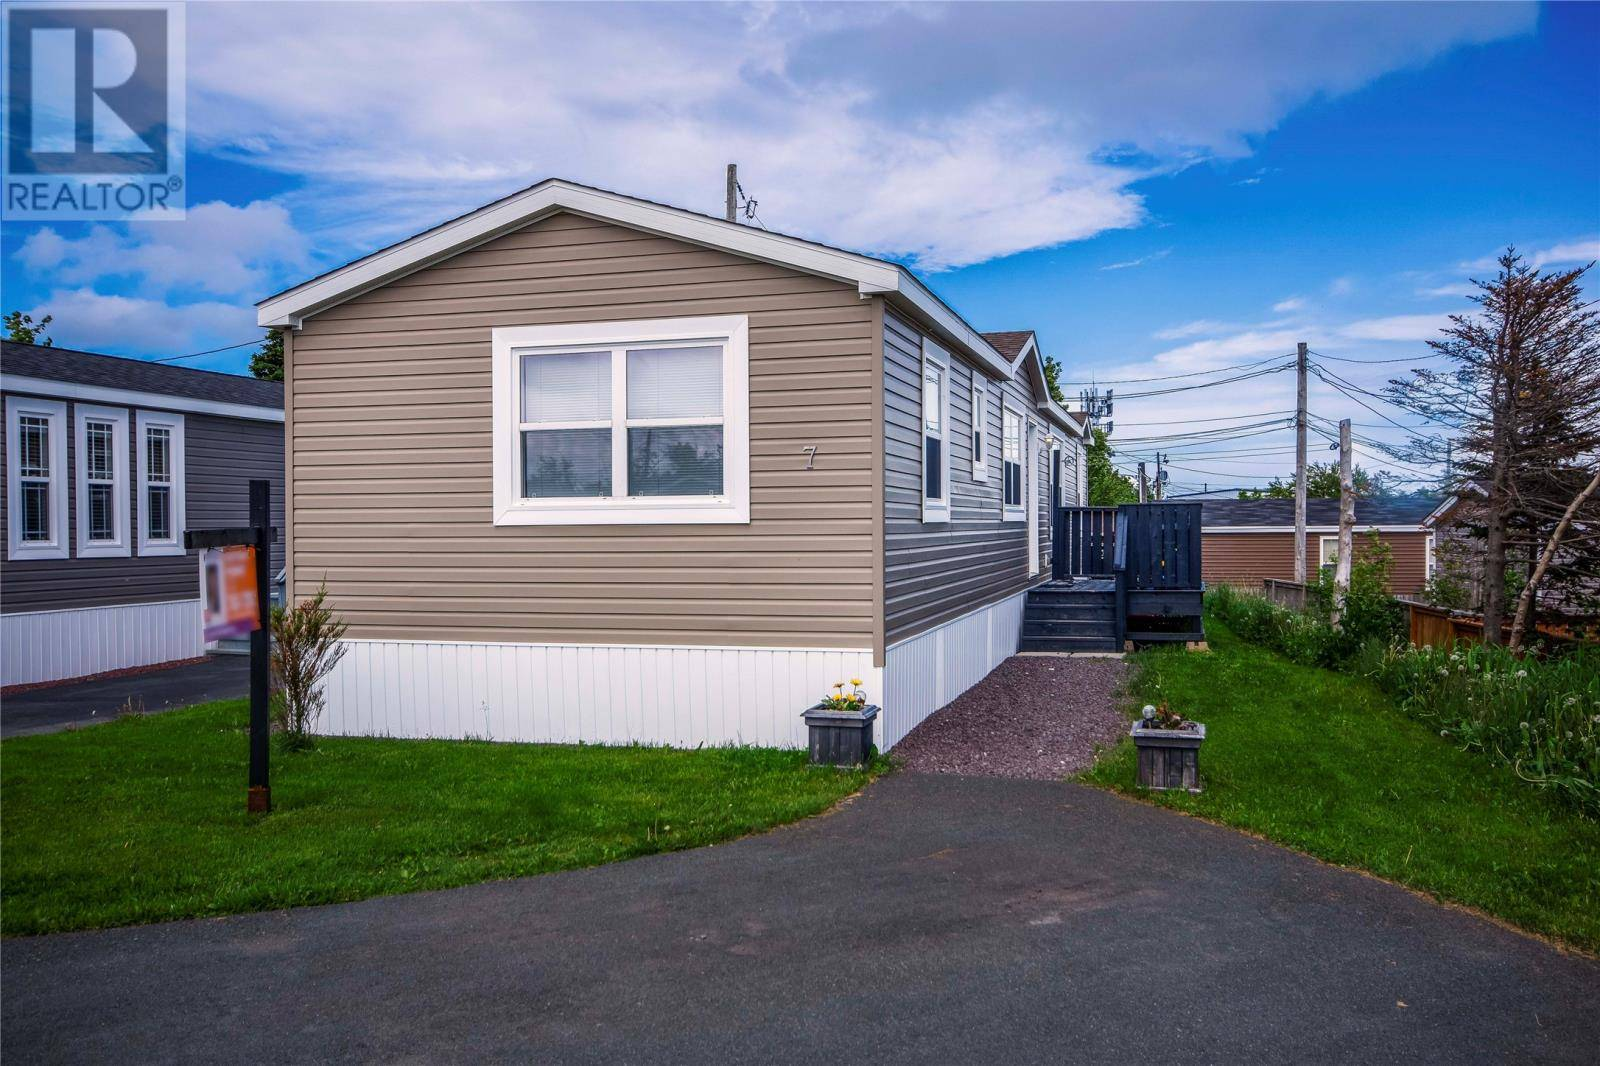 House for sale at 7 Rhaye Pl St. John's Newfoundland - MLS: 1193308